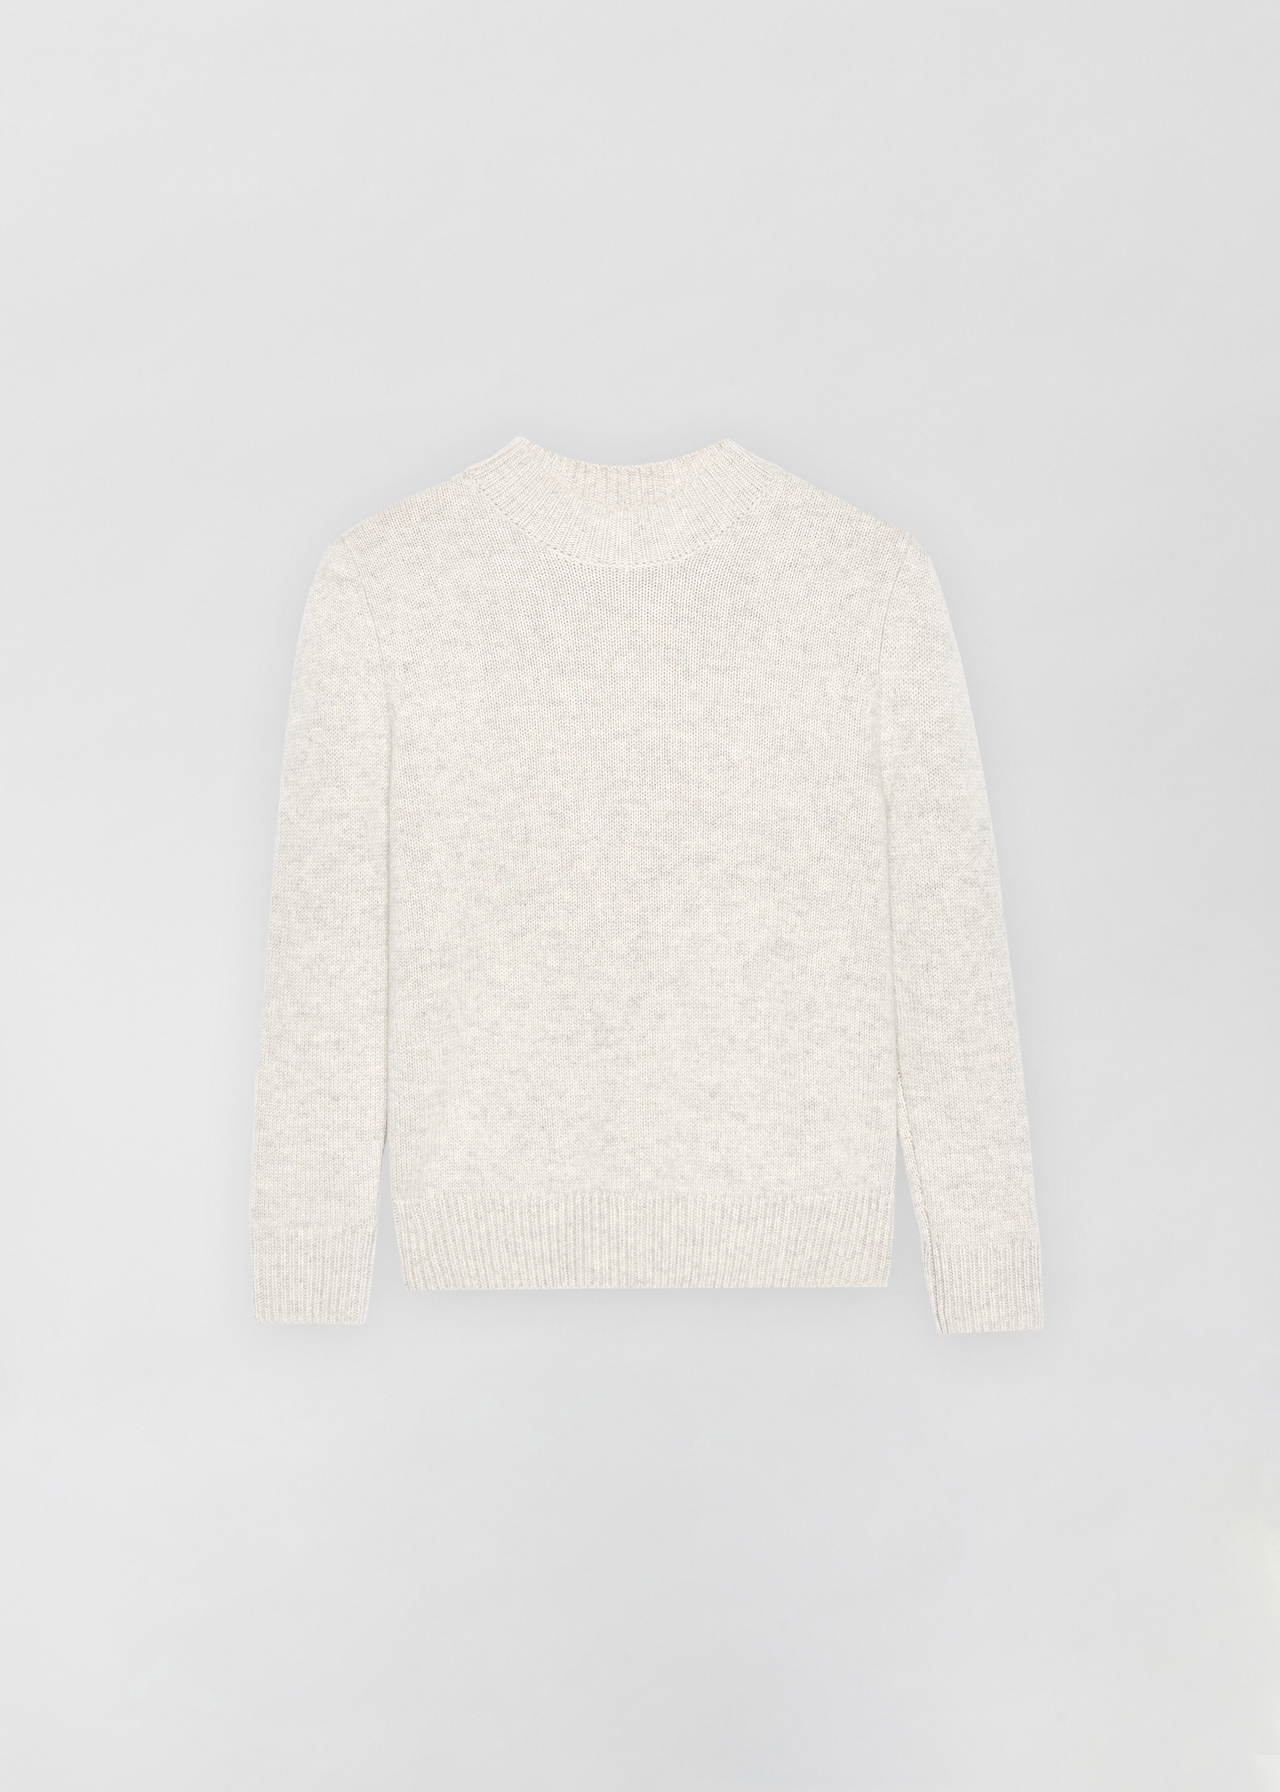 Ruched Cashmere Crew Neck Sweater - Light Grey in Chalk by Co Collections